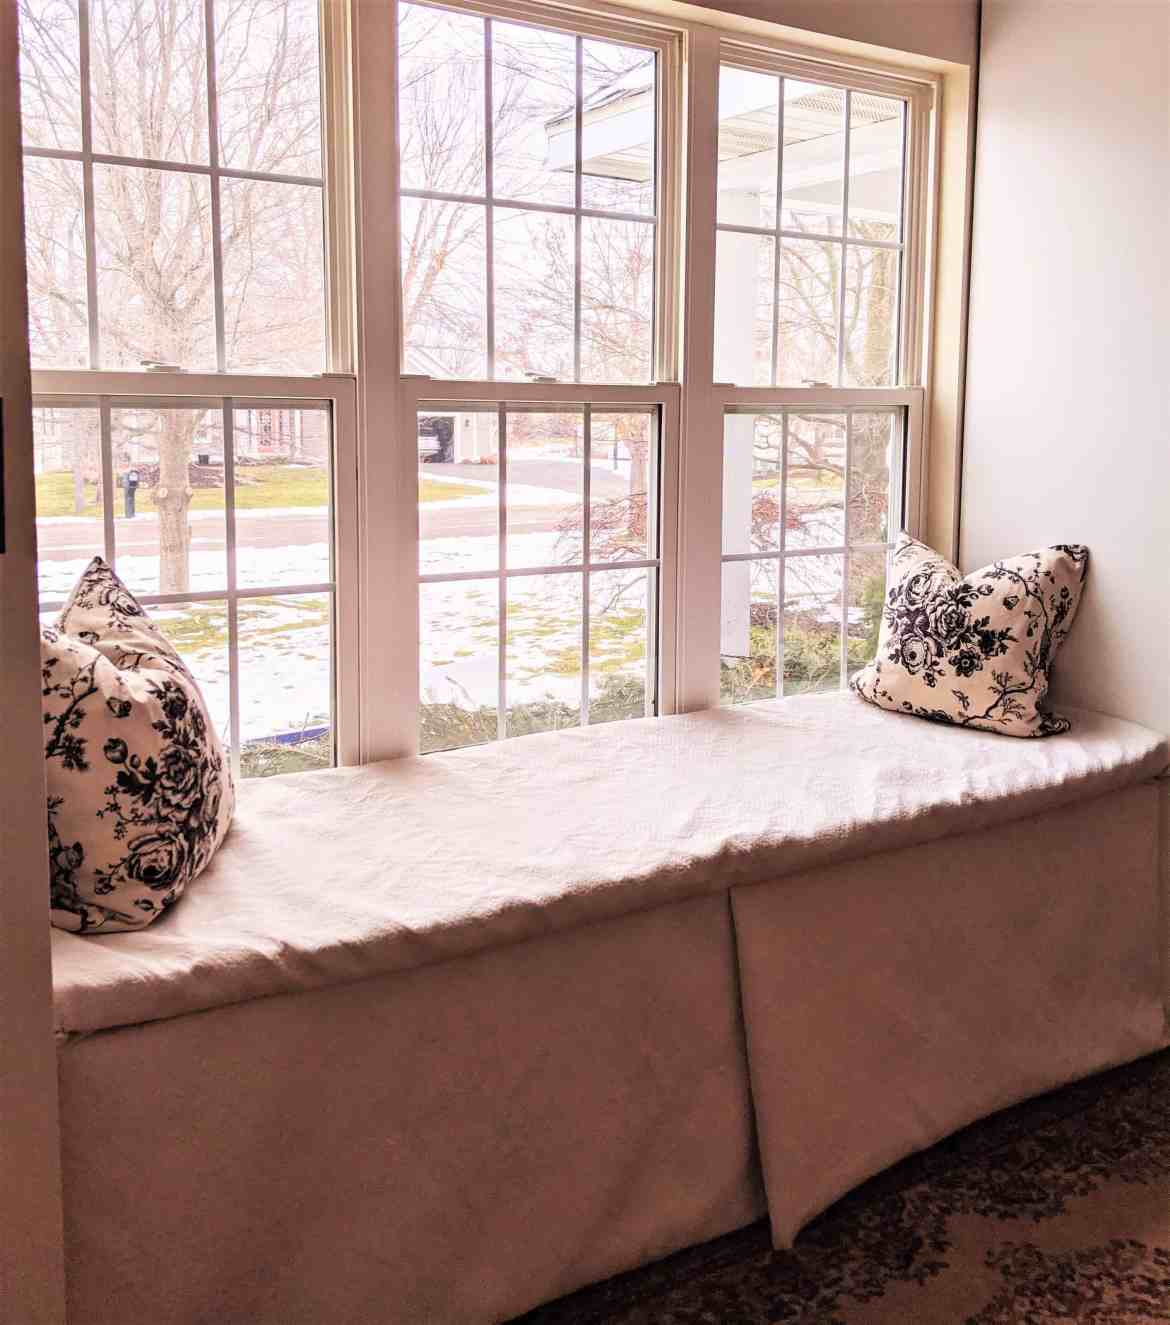 apolstered window seat